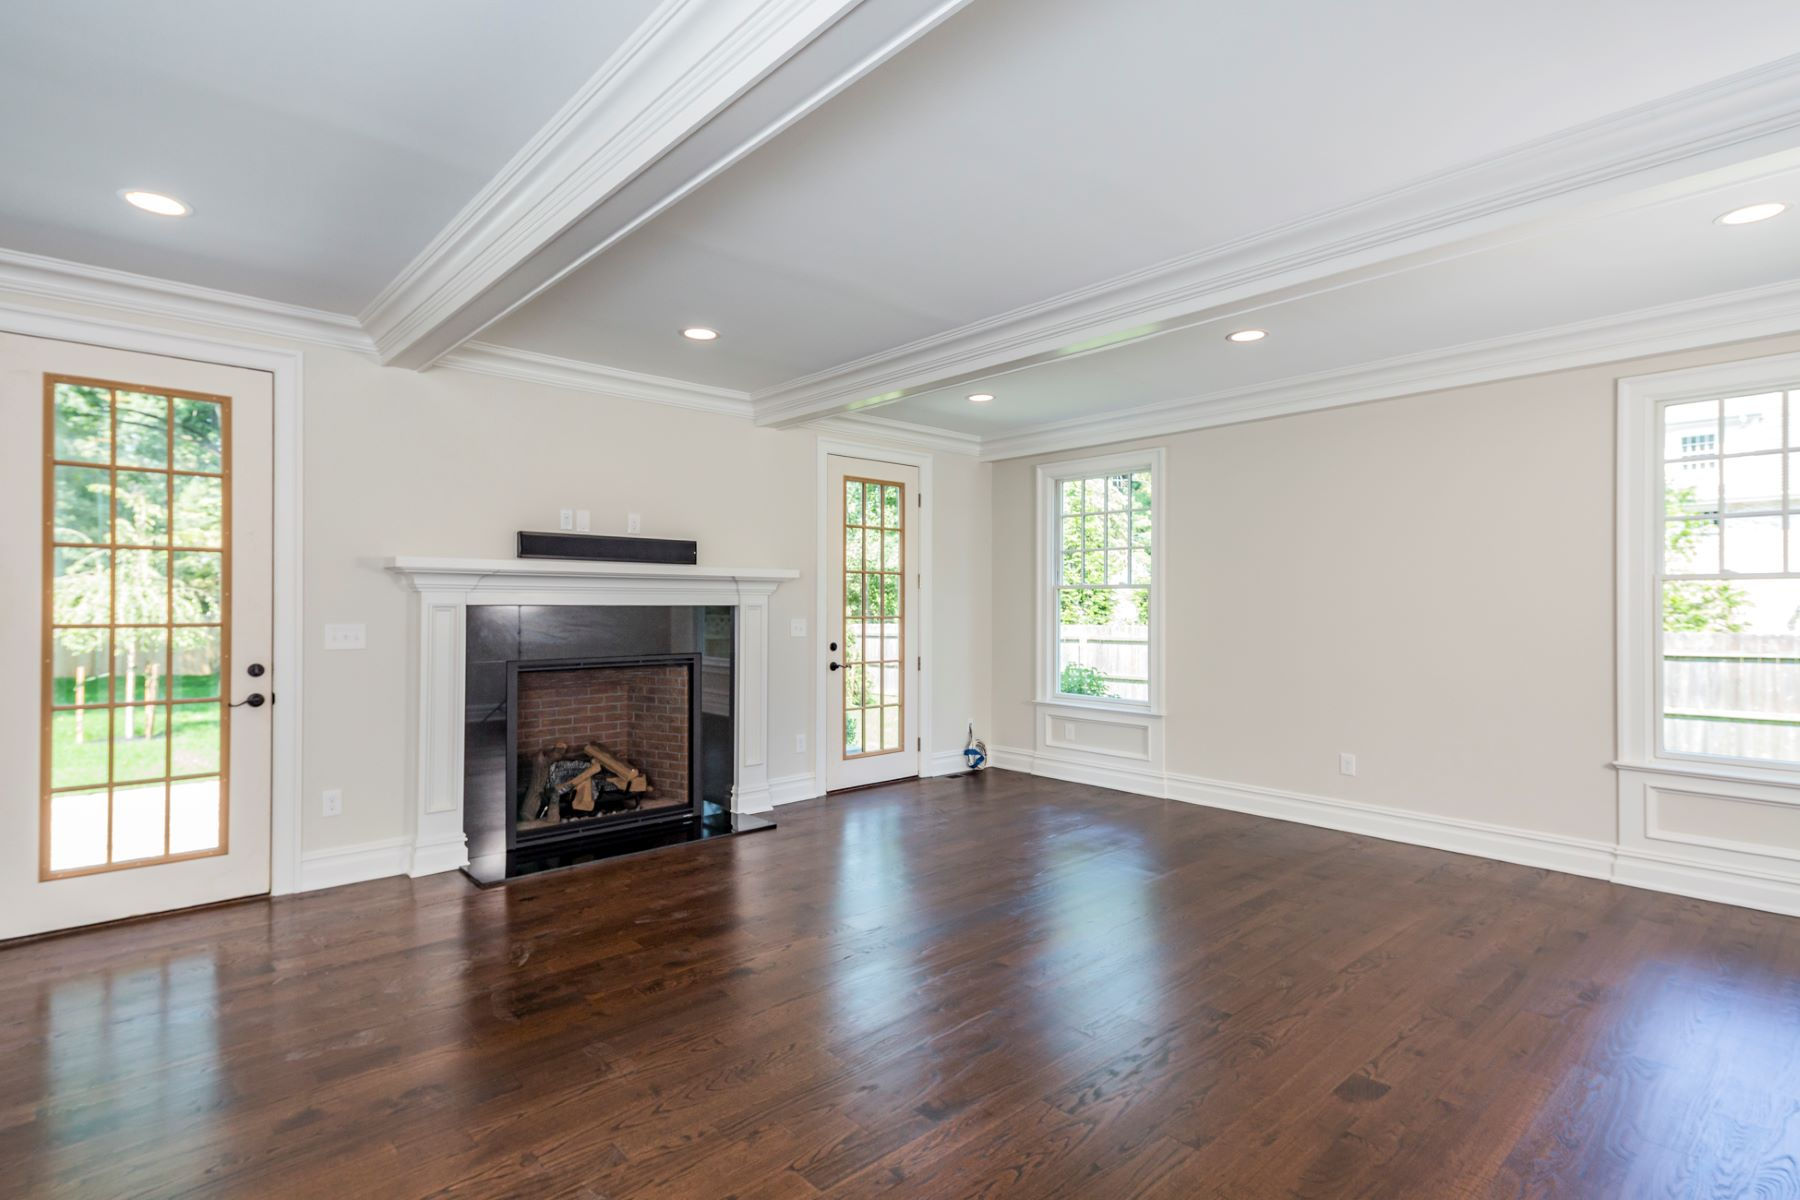 Additional photo for property listing at New Construction by RB Homes 259 Edgerstoune Road, Princeton, New Jersey 08540 United States